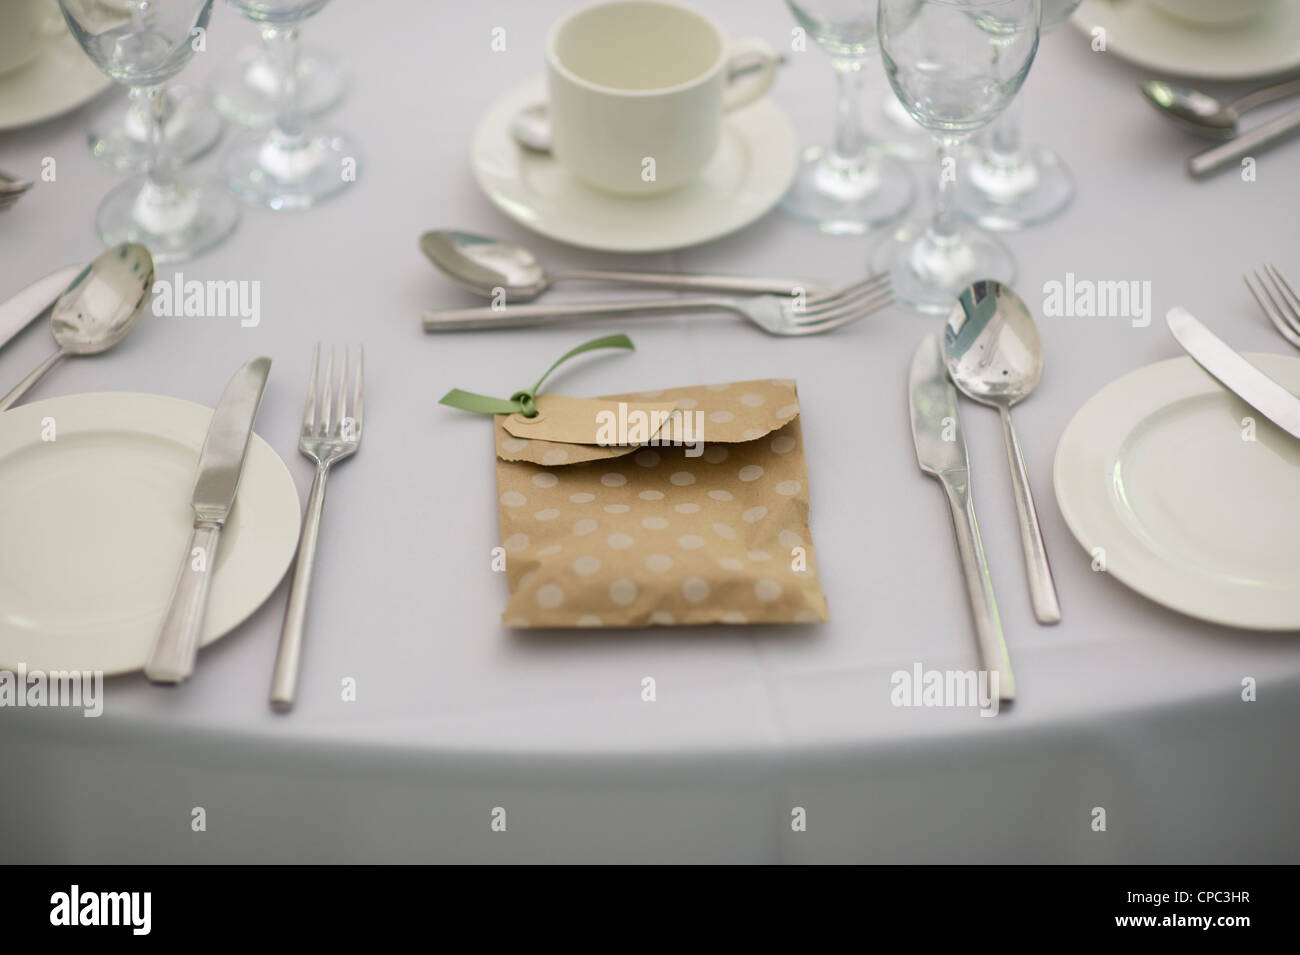 place setting at a wedding with a favor or favour - Stock Image